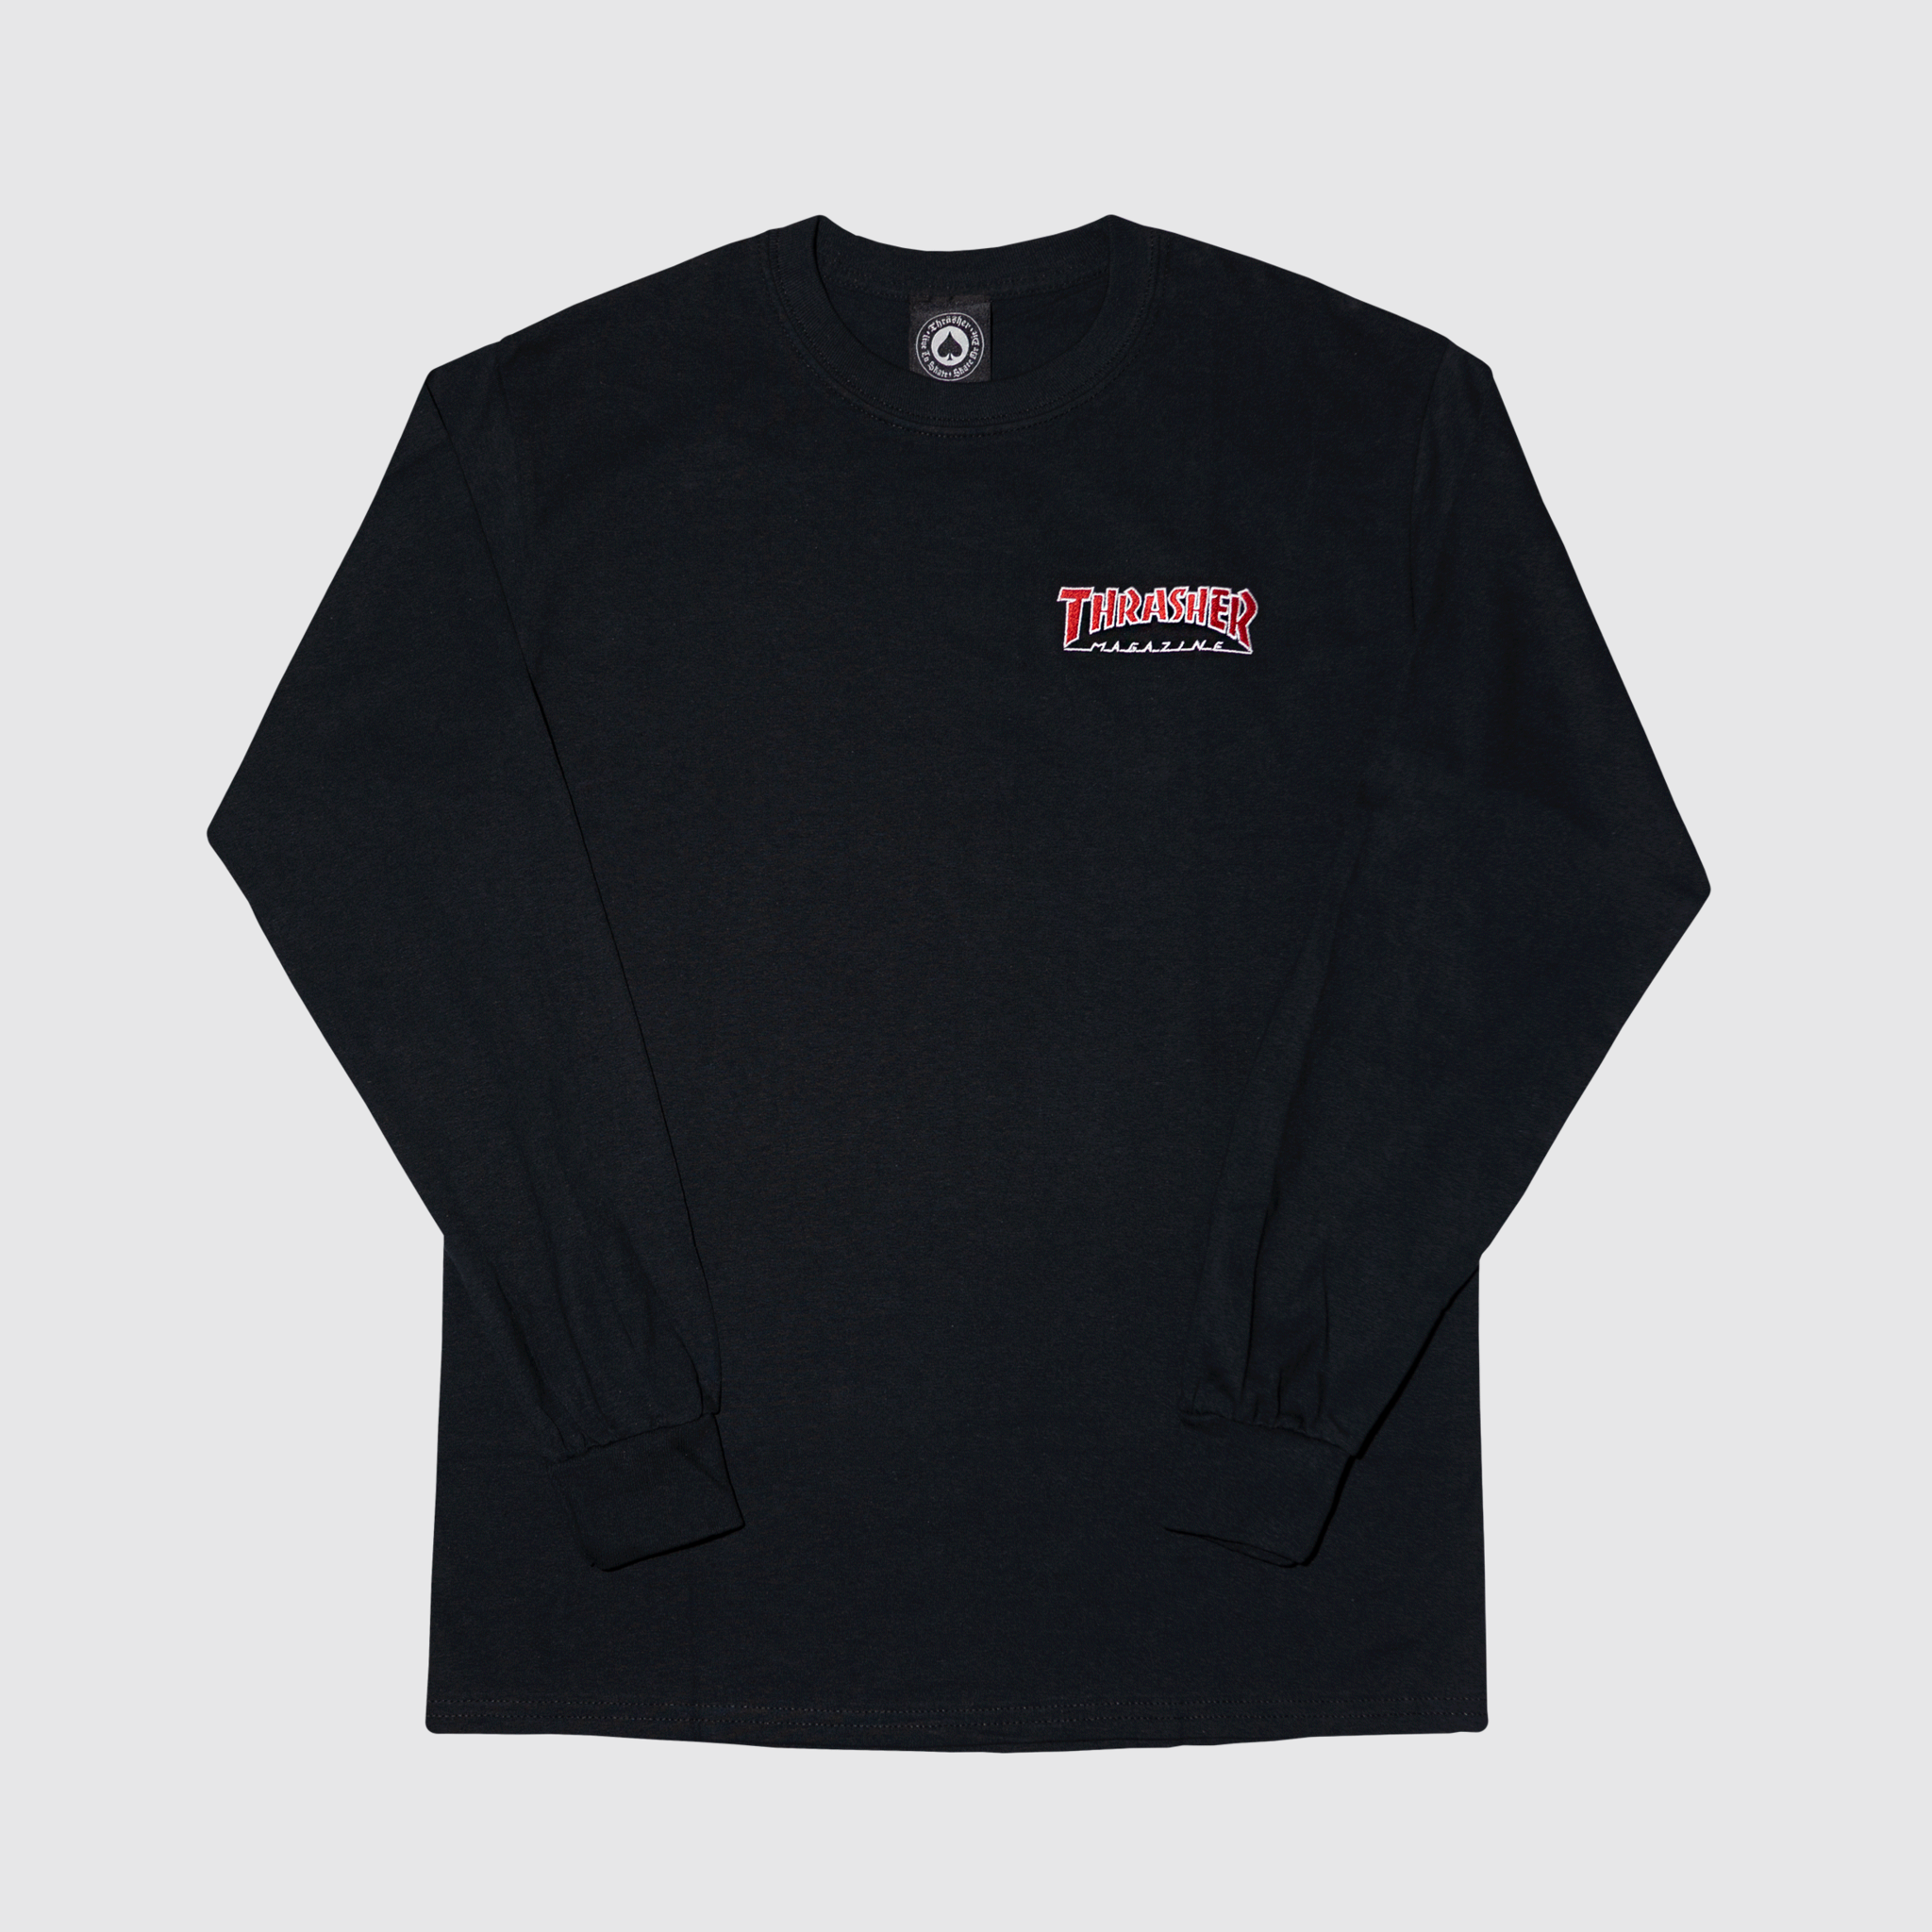 Лонгслив Thrasher embroidered outlined crew black